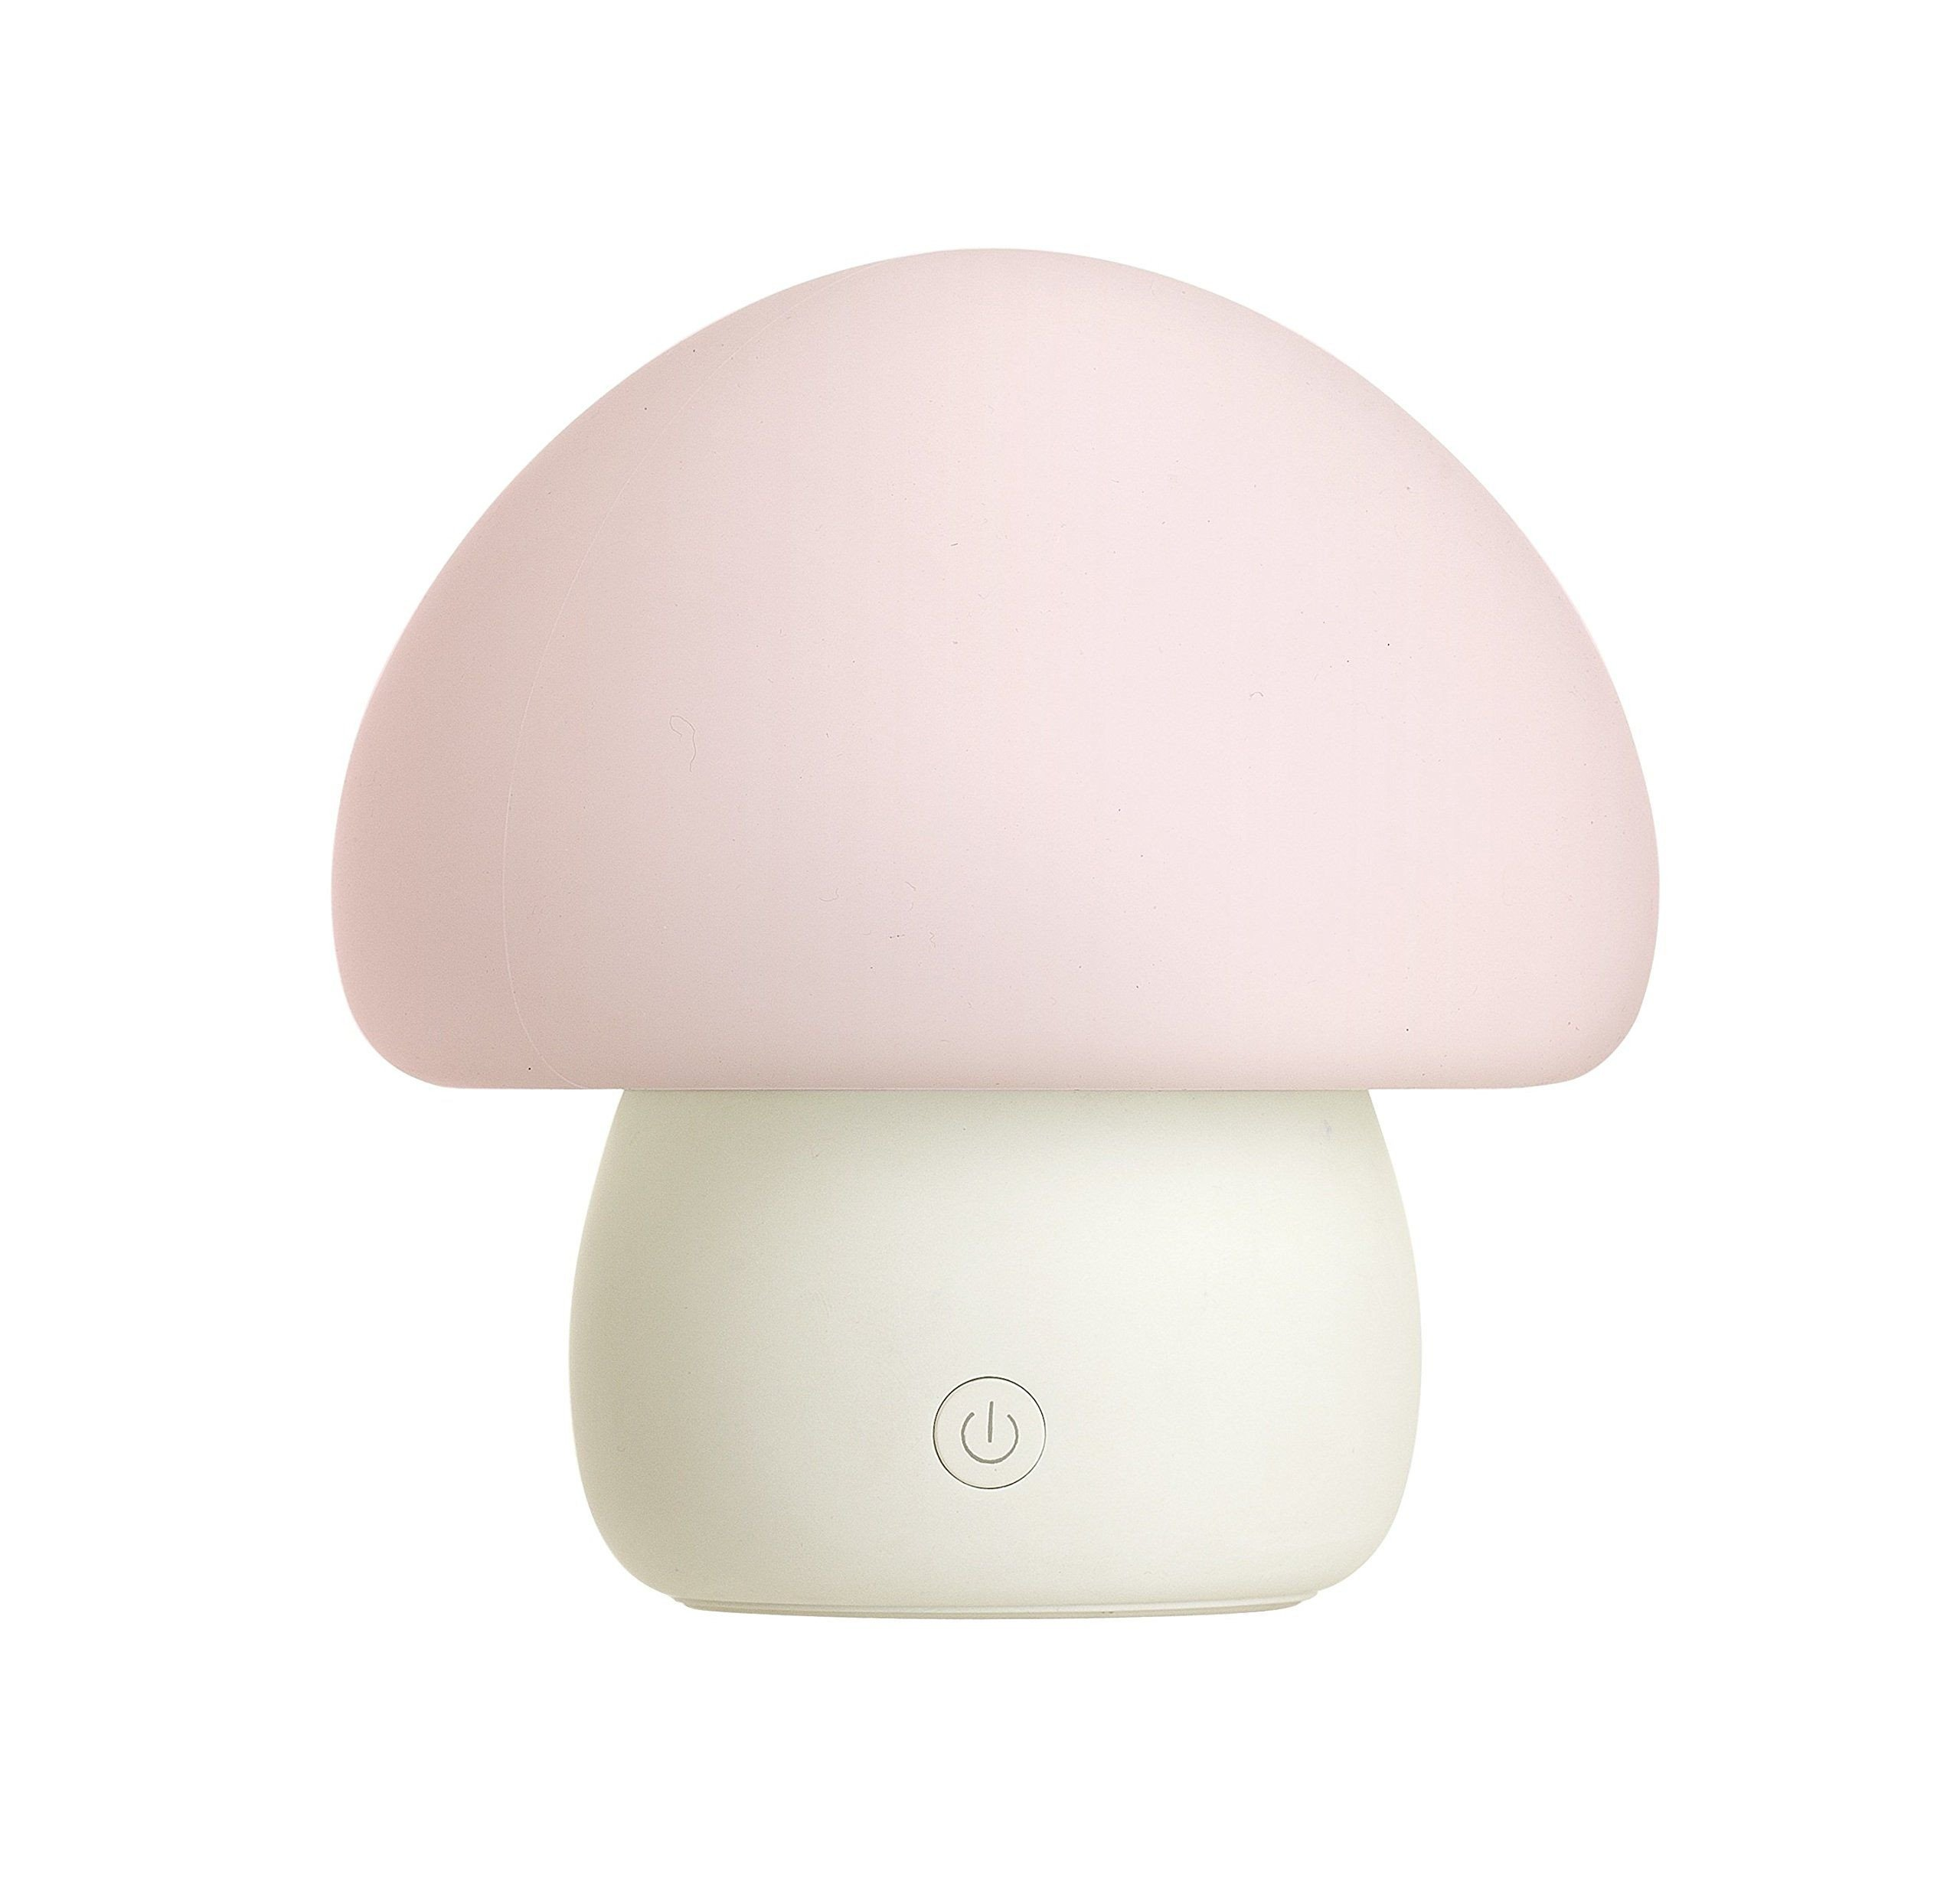 Night Lamp for Bedroom Inspirational Multicolor Led Baby Night Light Portable Silicone Mushroom